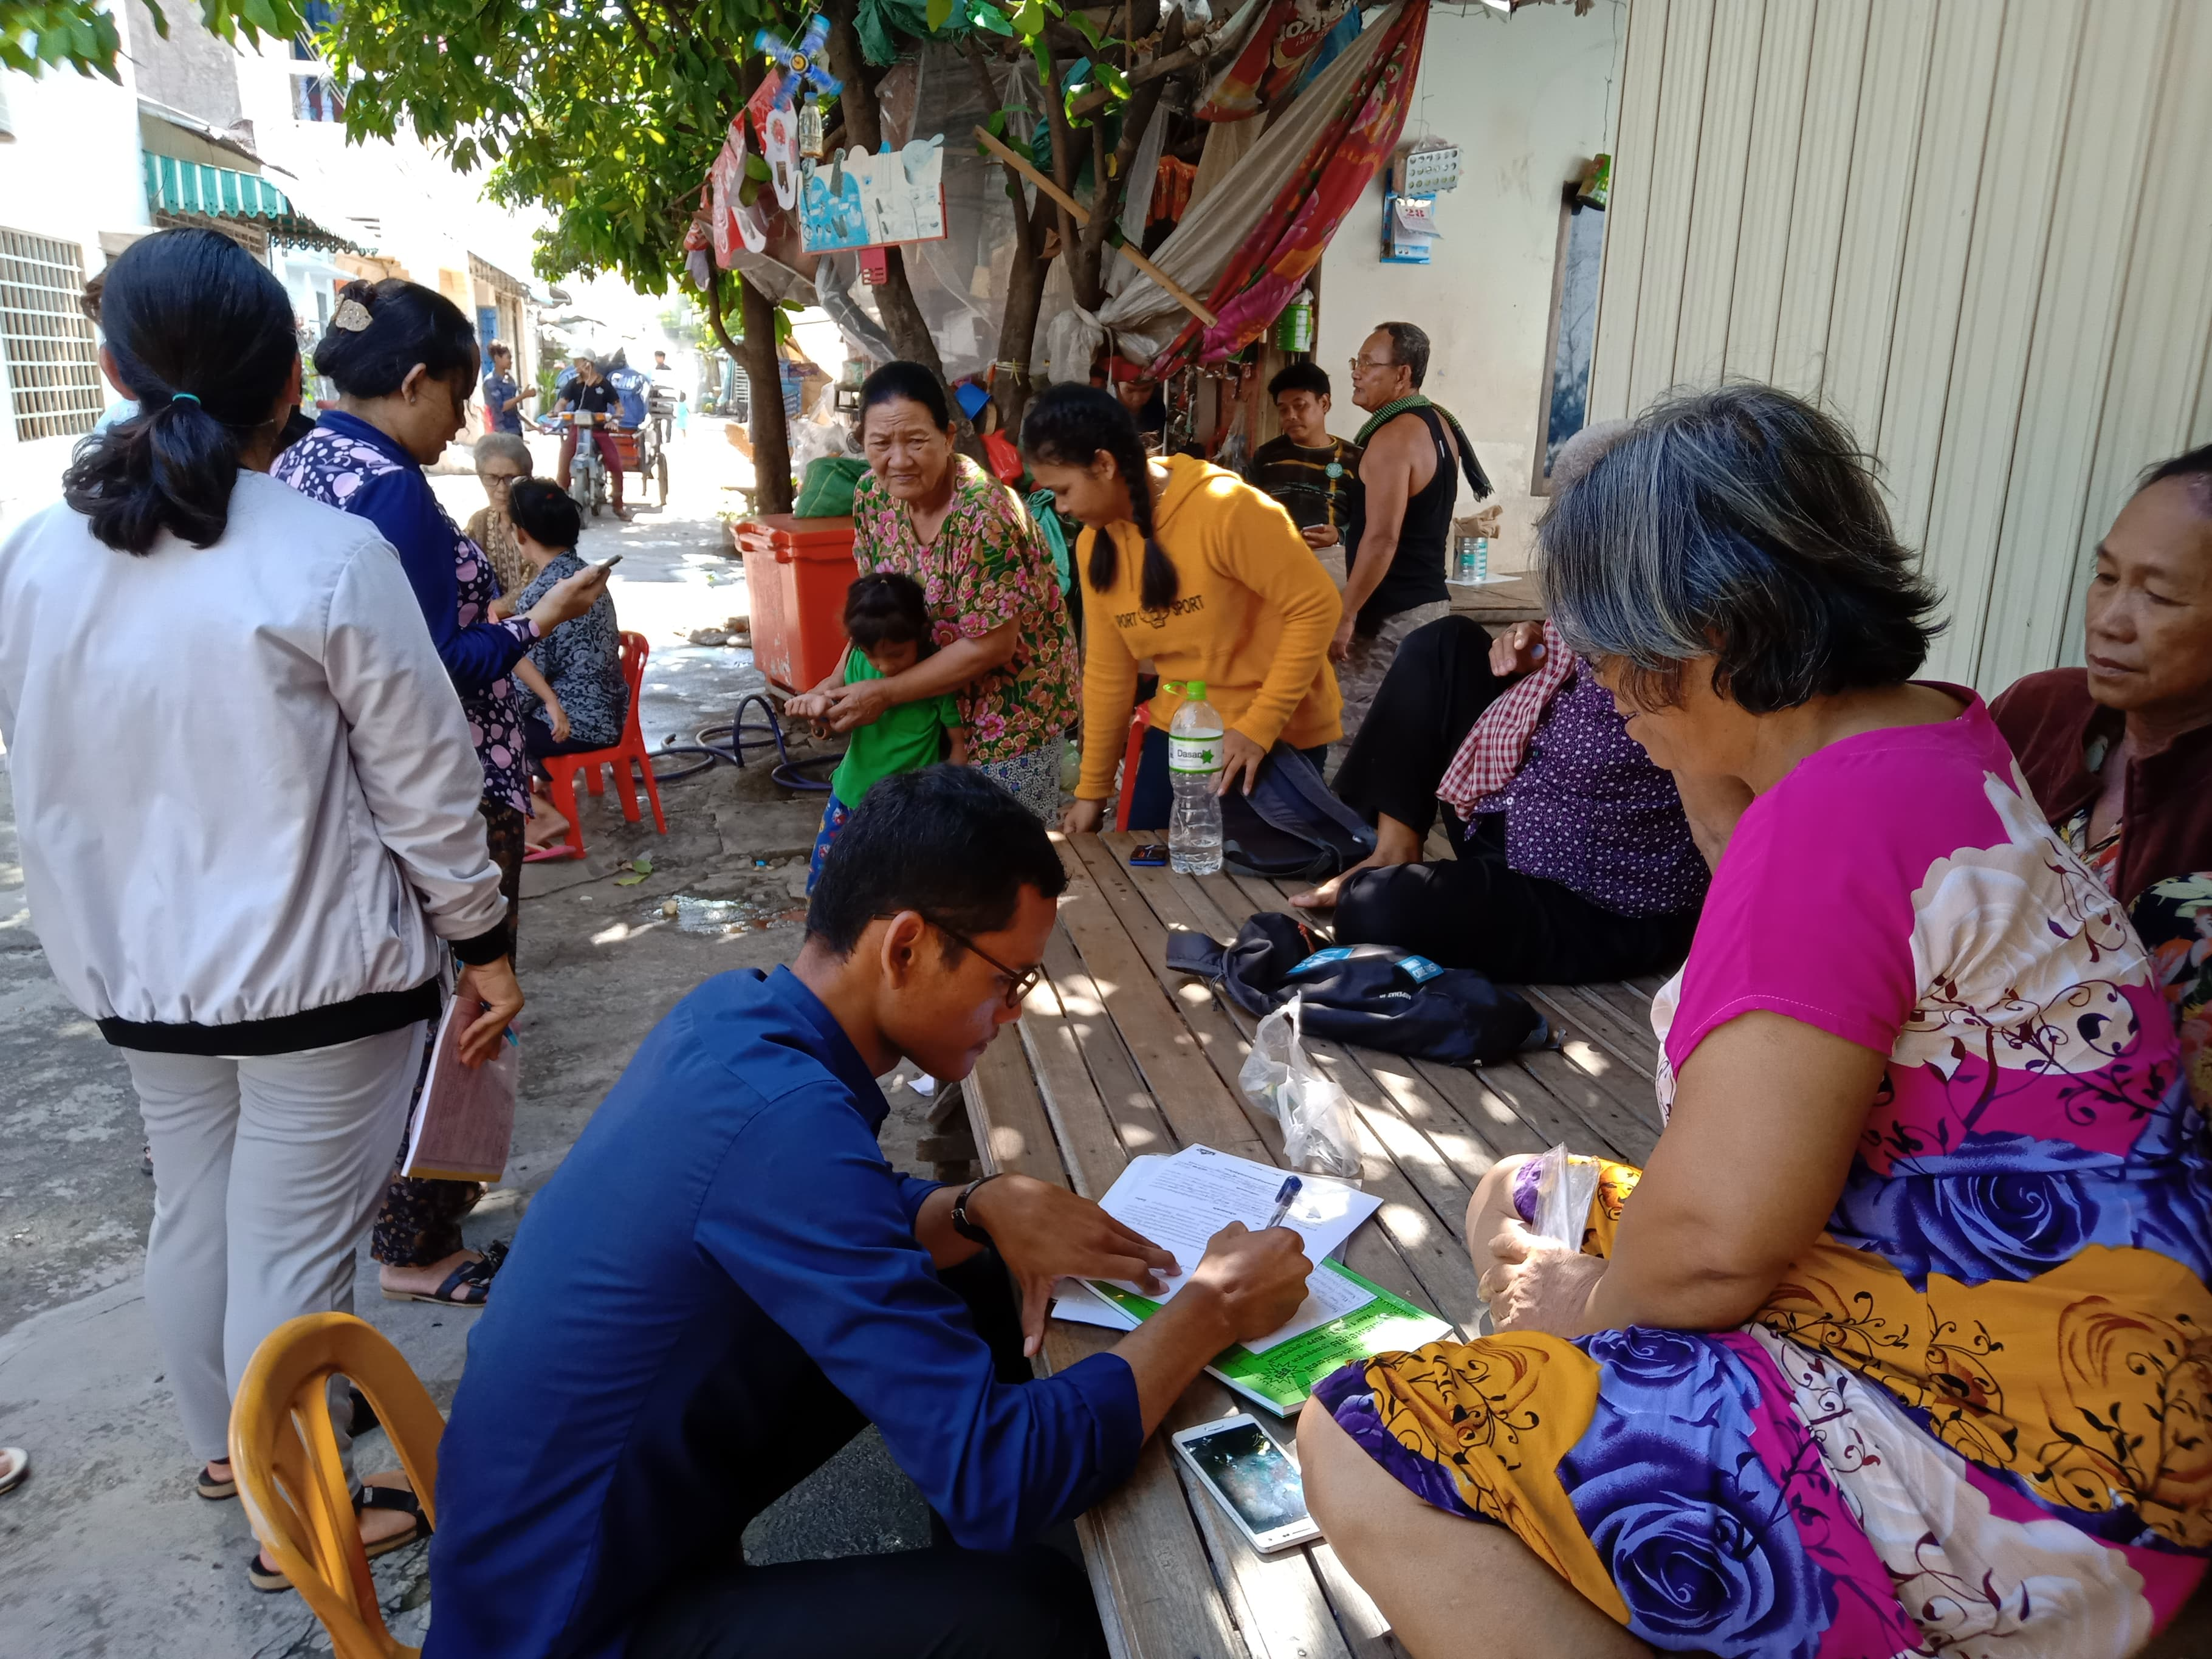 Sang Samart assisting older persons in Cambodia